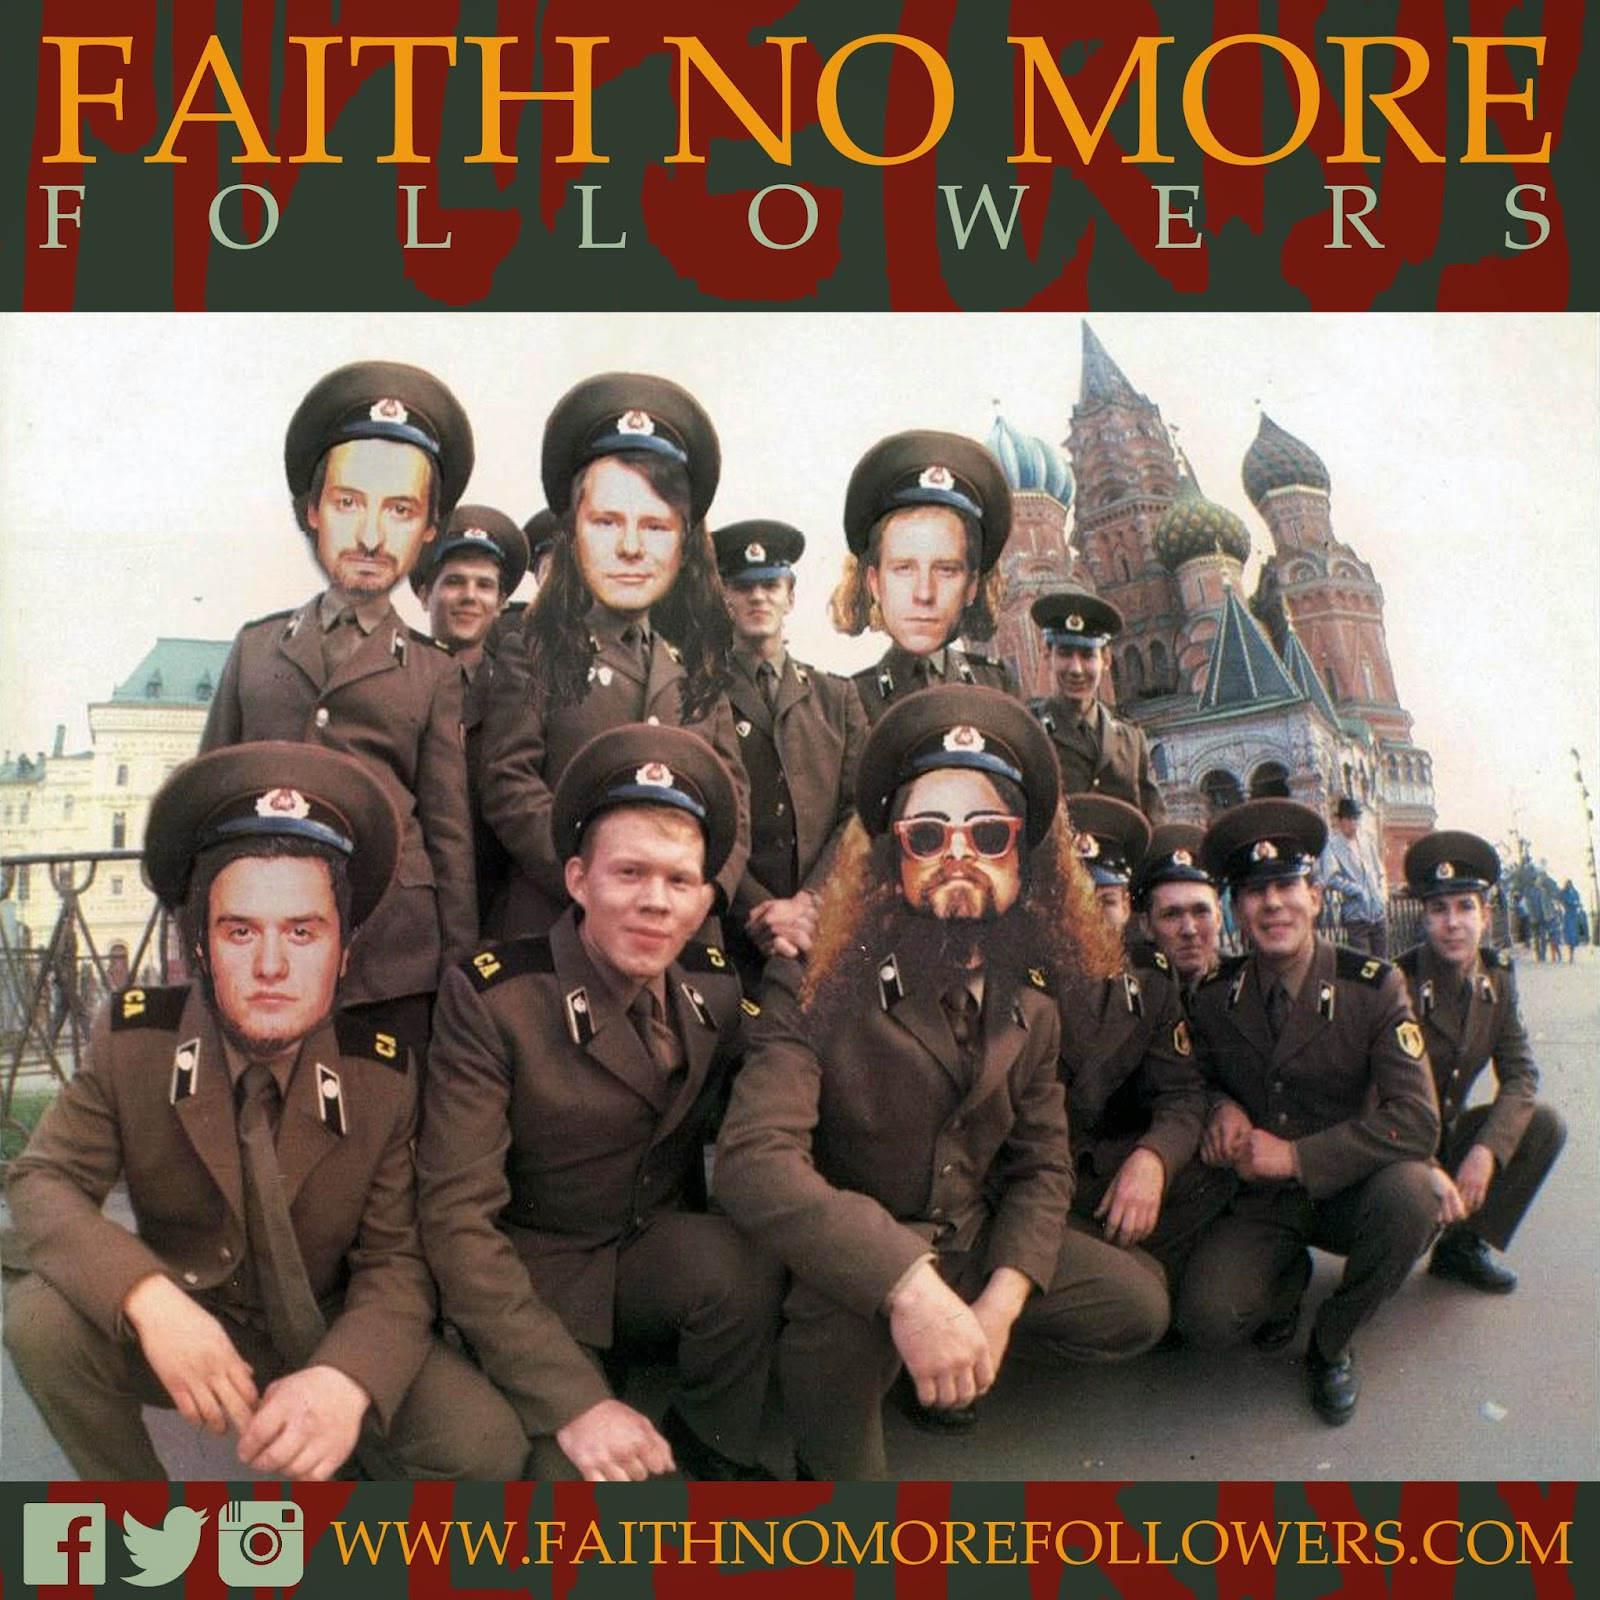 MIDLIFE CRISIS 23 - The Best FAITH NO MORE Song?